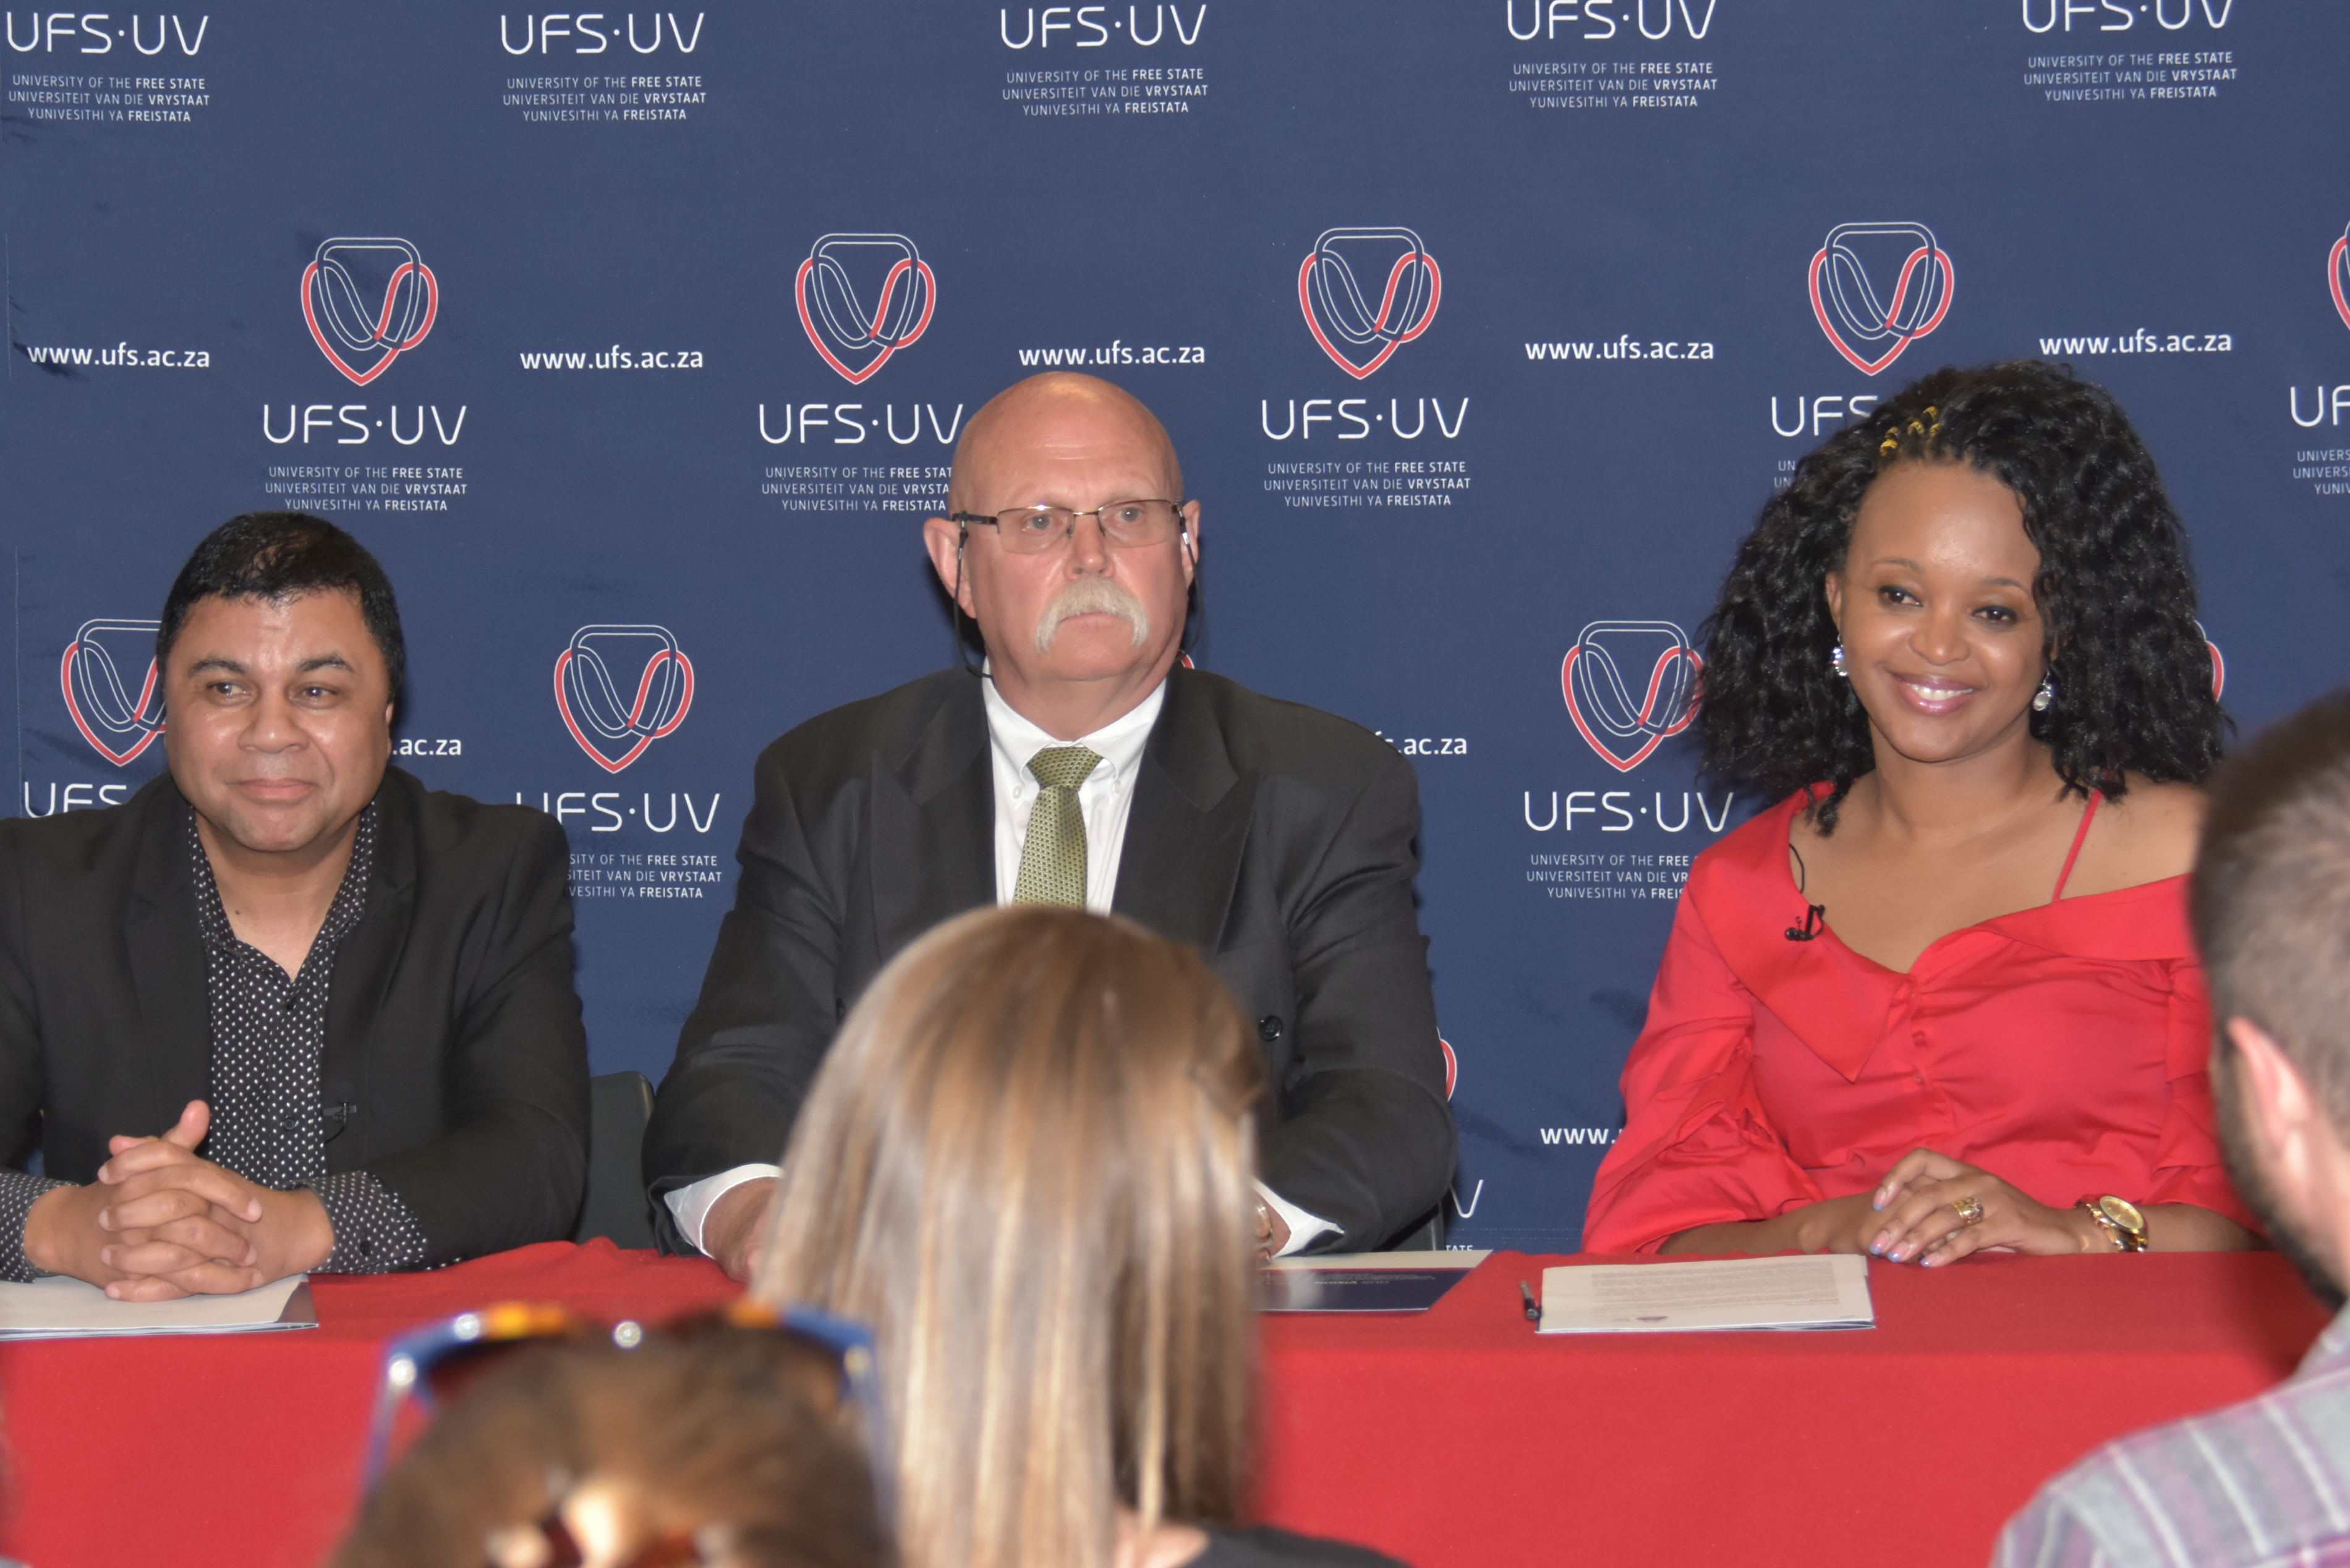 From the left: Prof Francis Petersen, UFS Rector and Vice-Chancellor; Mr Willem Louw, Chairperson of the UFS Council; and Dr Nthabeleng Rammile, Vice-Chairperson of the UFS Council.